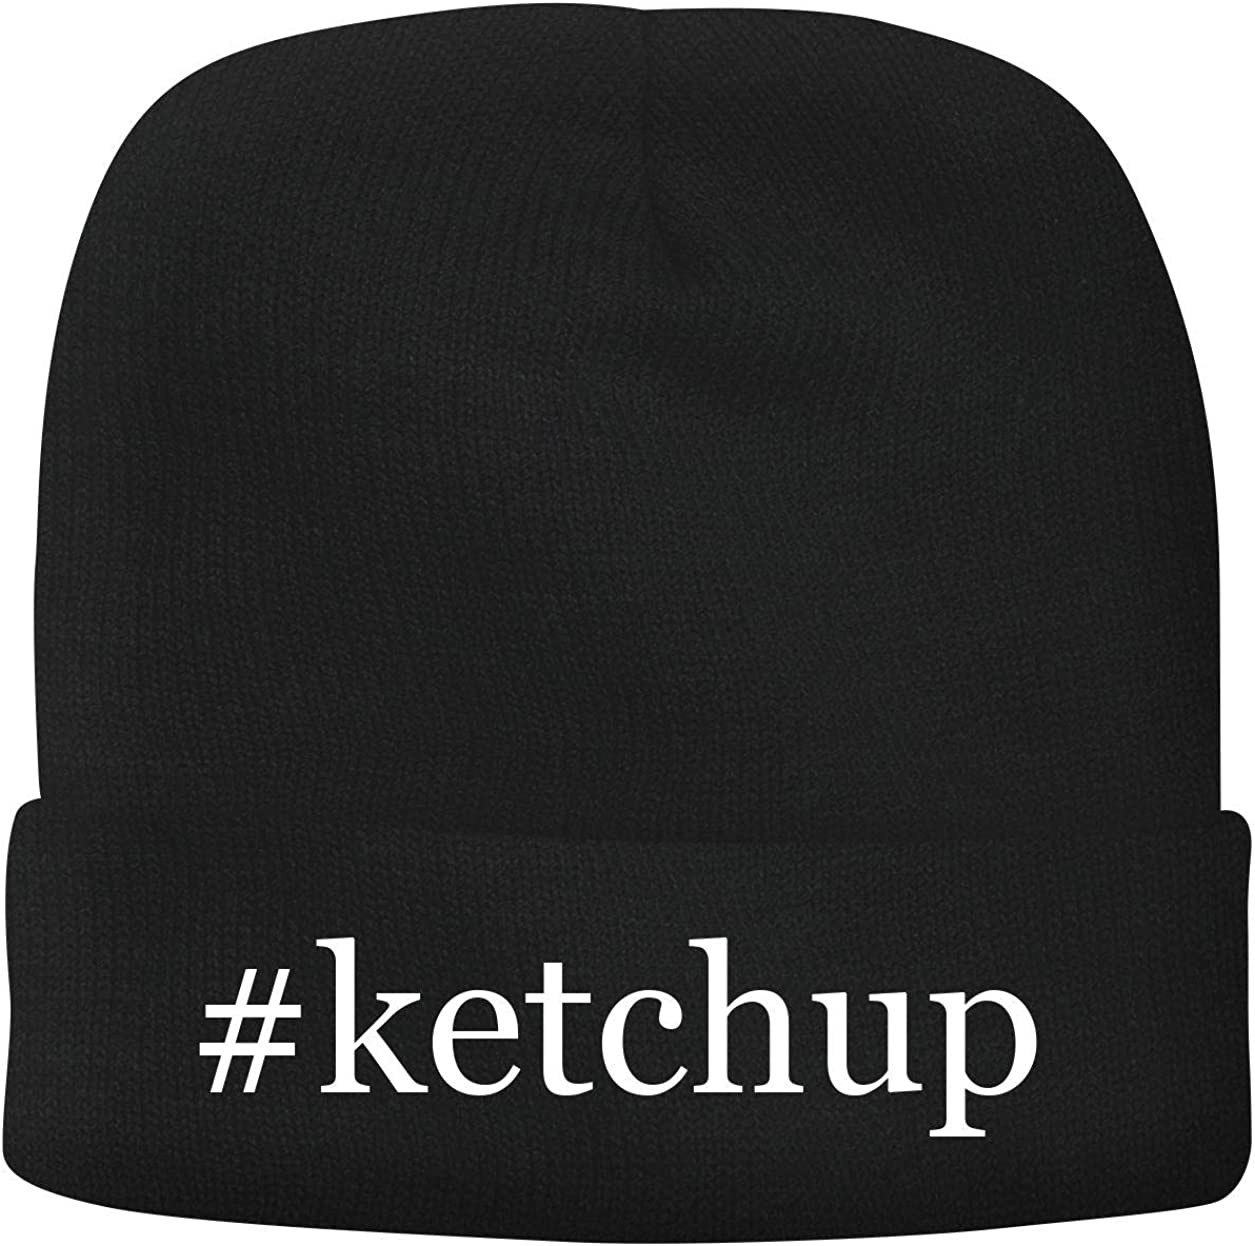 BH At the price of surprise Cool Designs #Ketchup - Hashtag Men's Bean Al sold out. Soft Comfortable